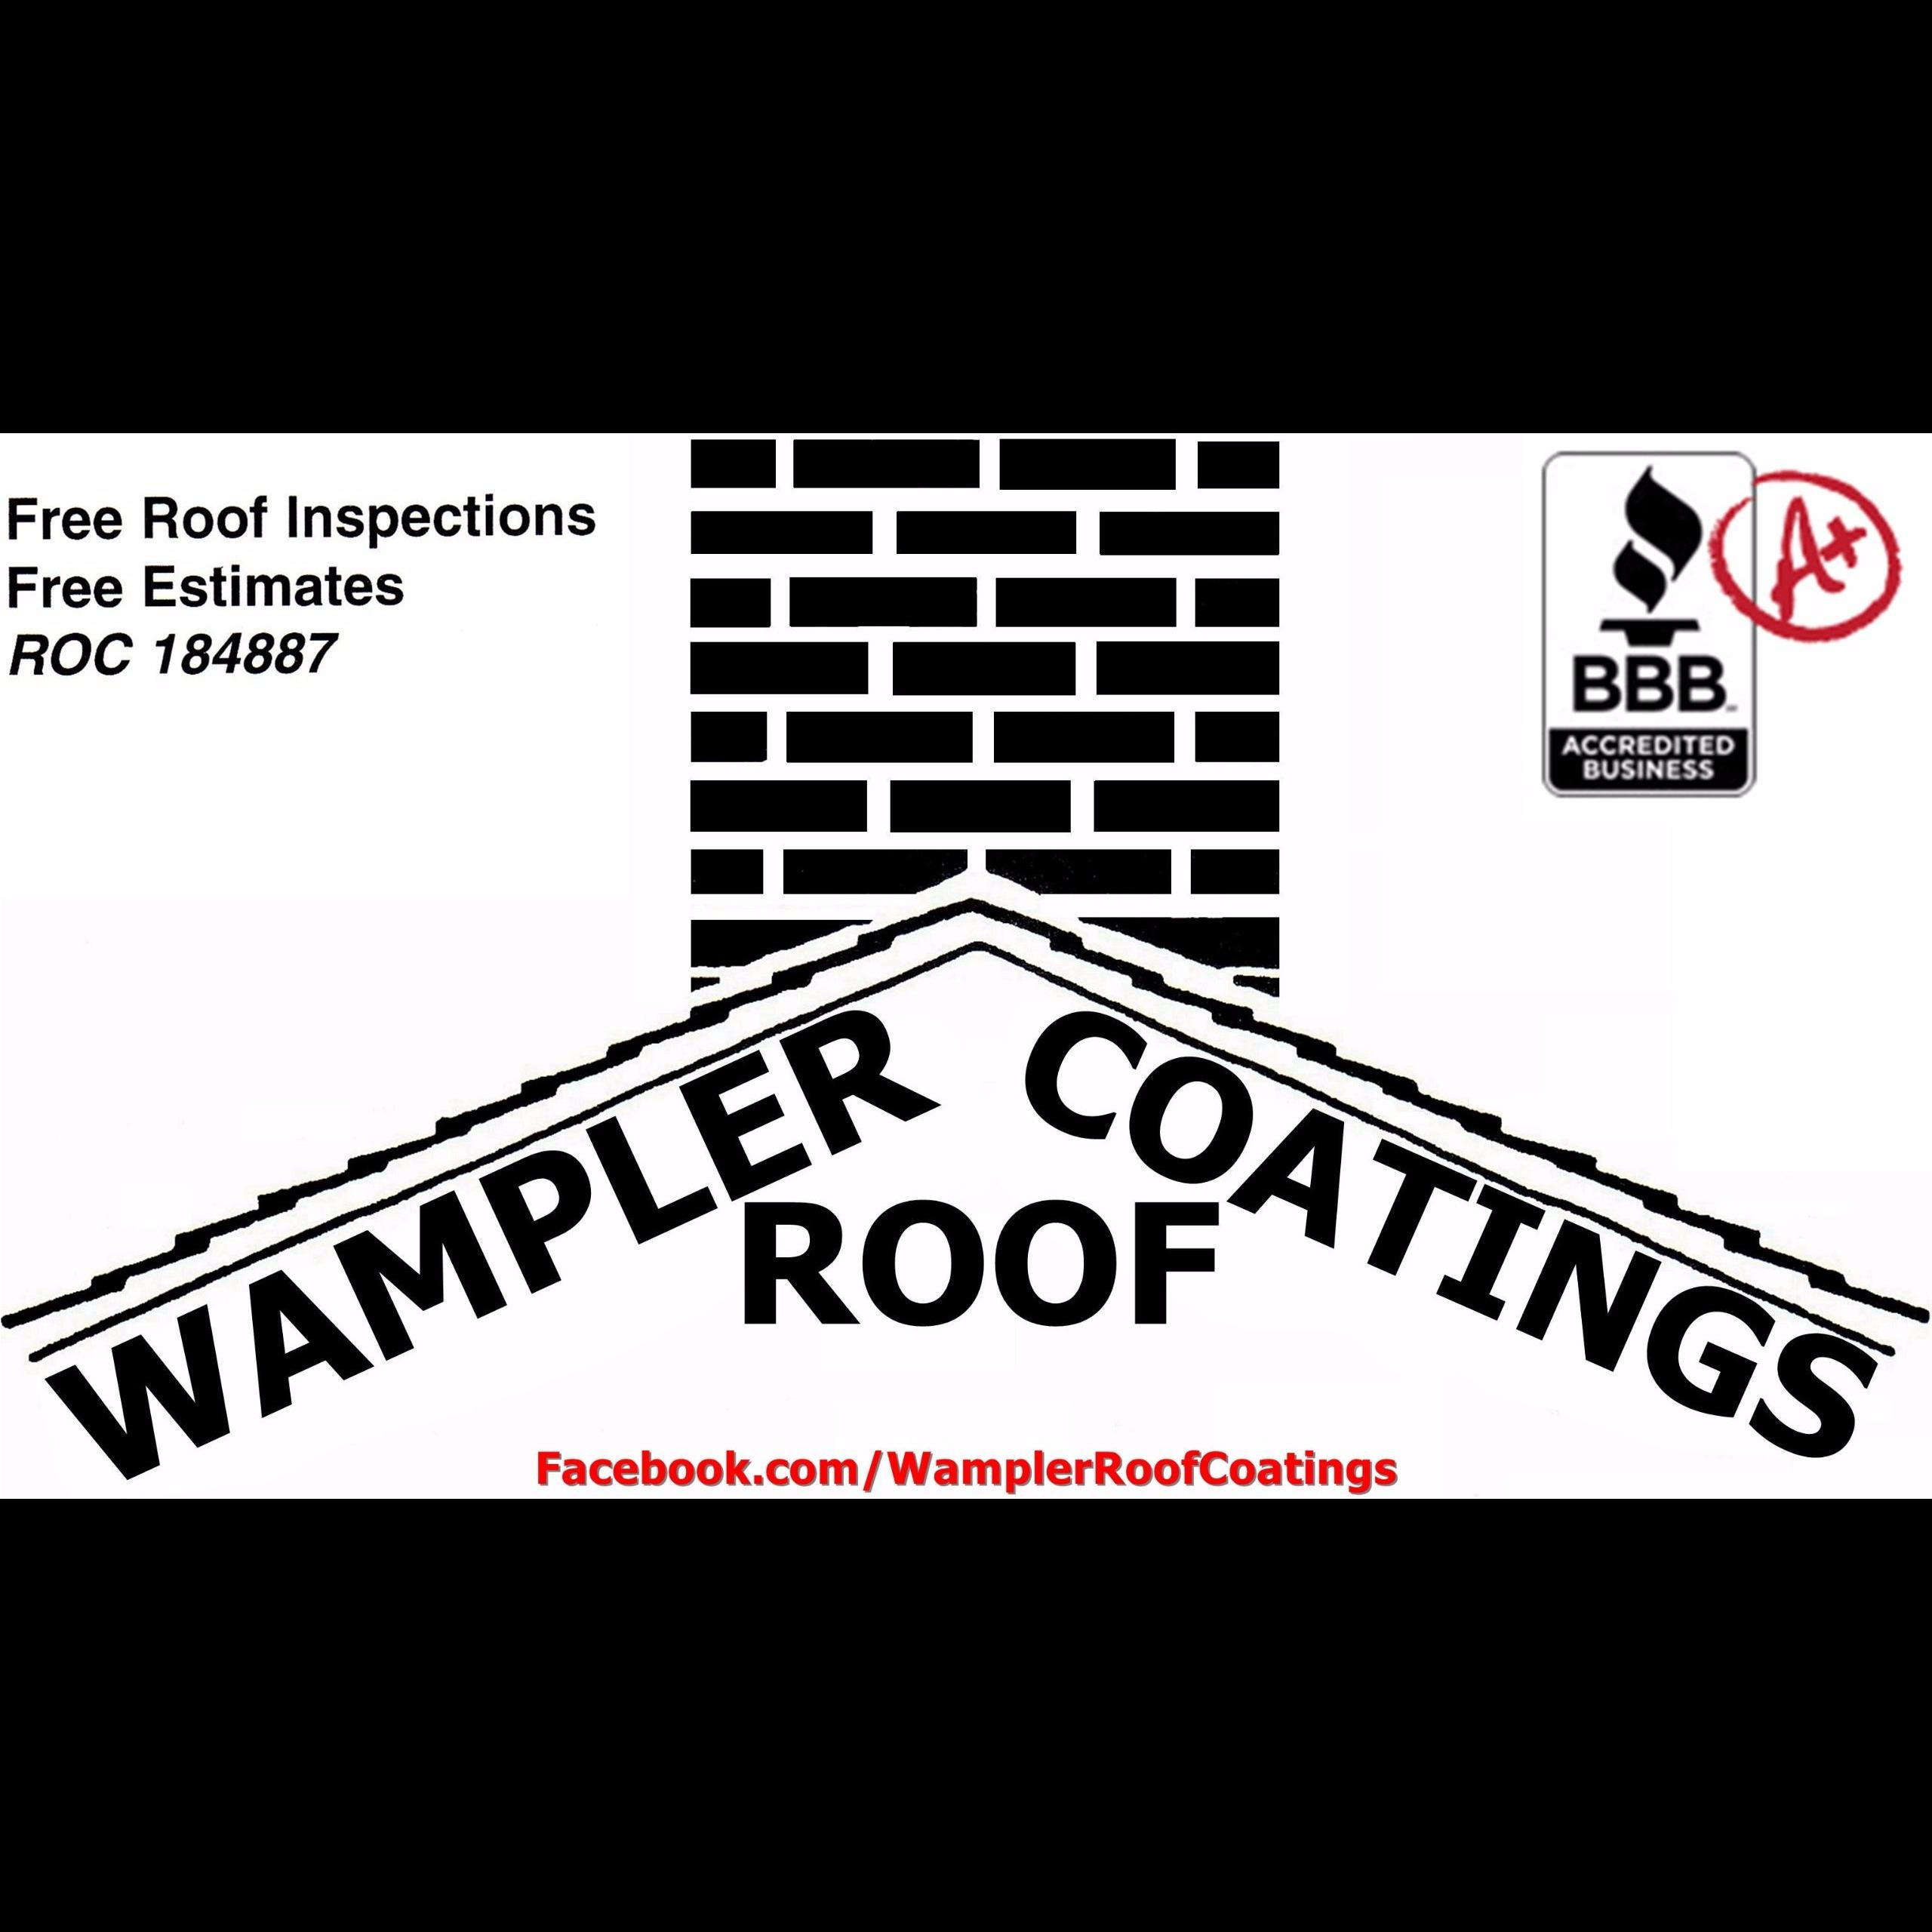 Wampler Roof Coatings LLC